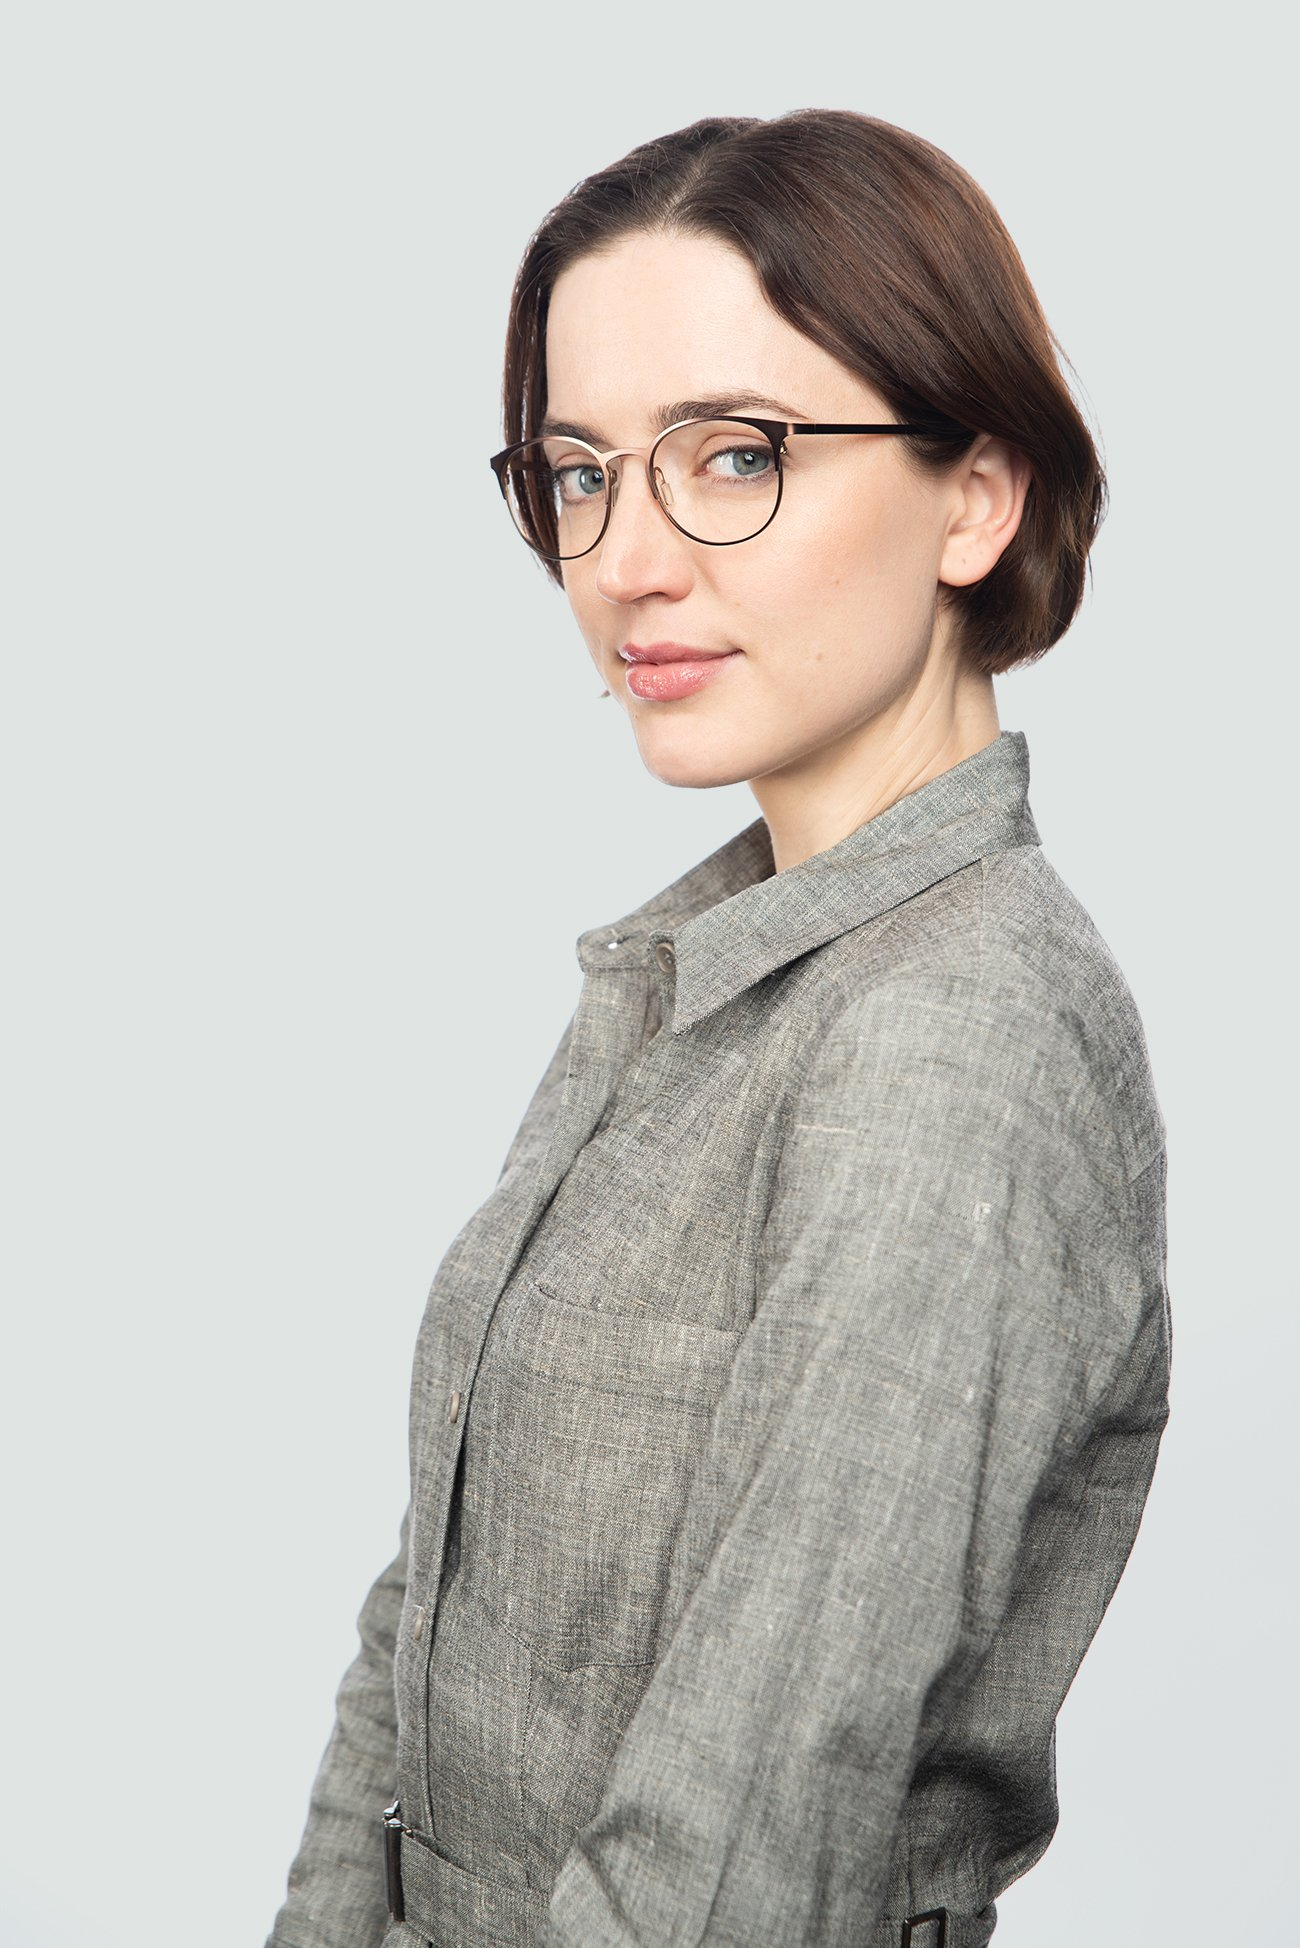 brunette woman wearing metal brown glasses